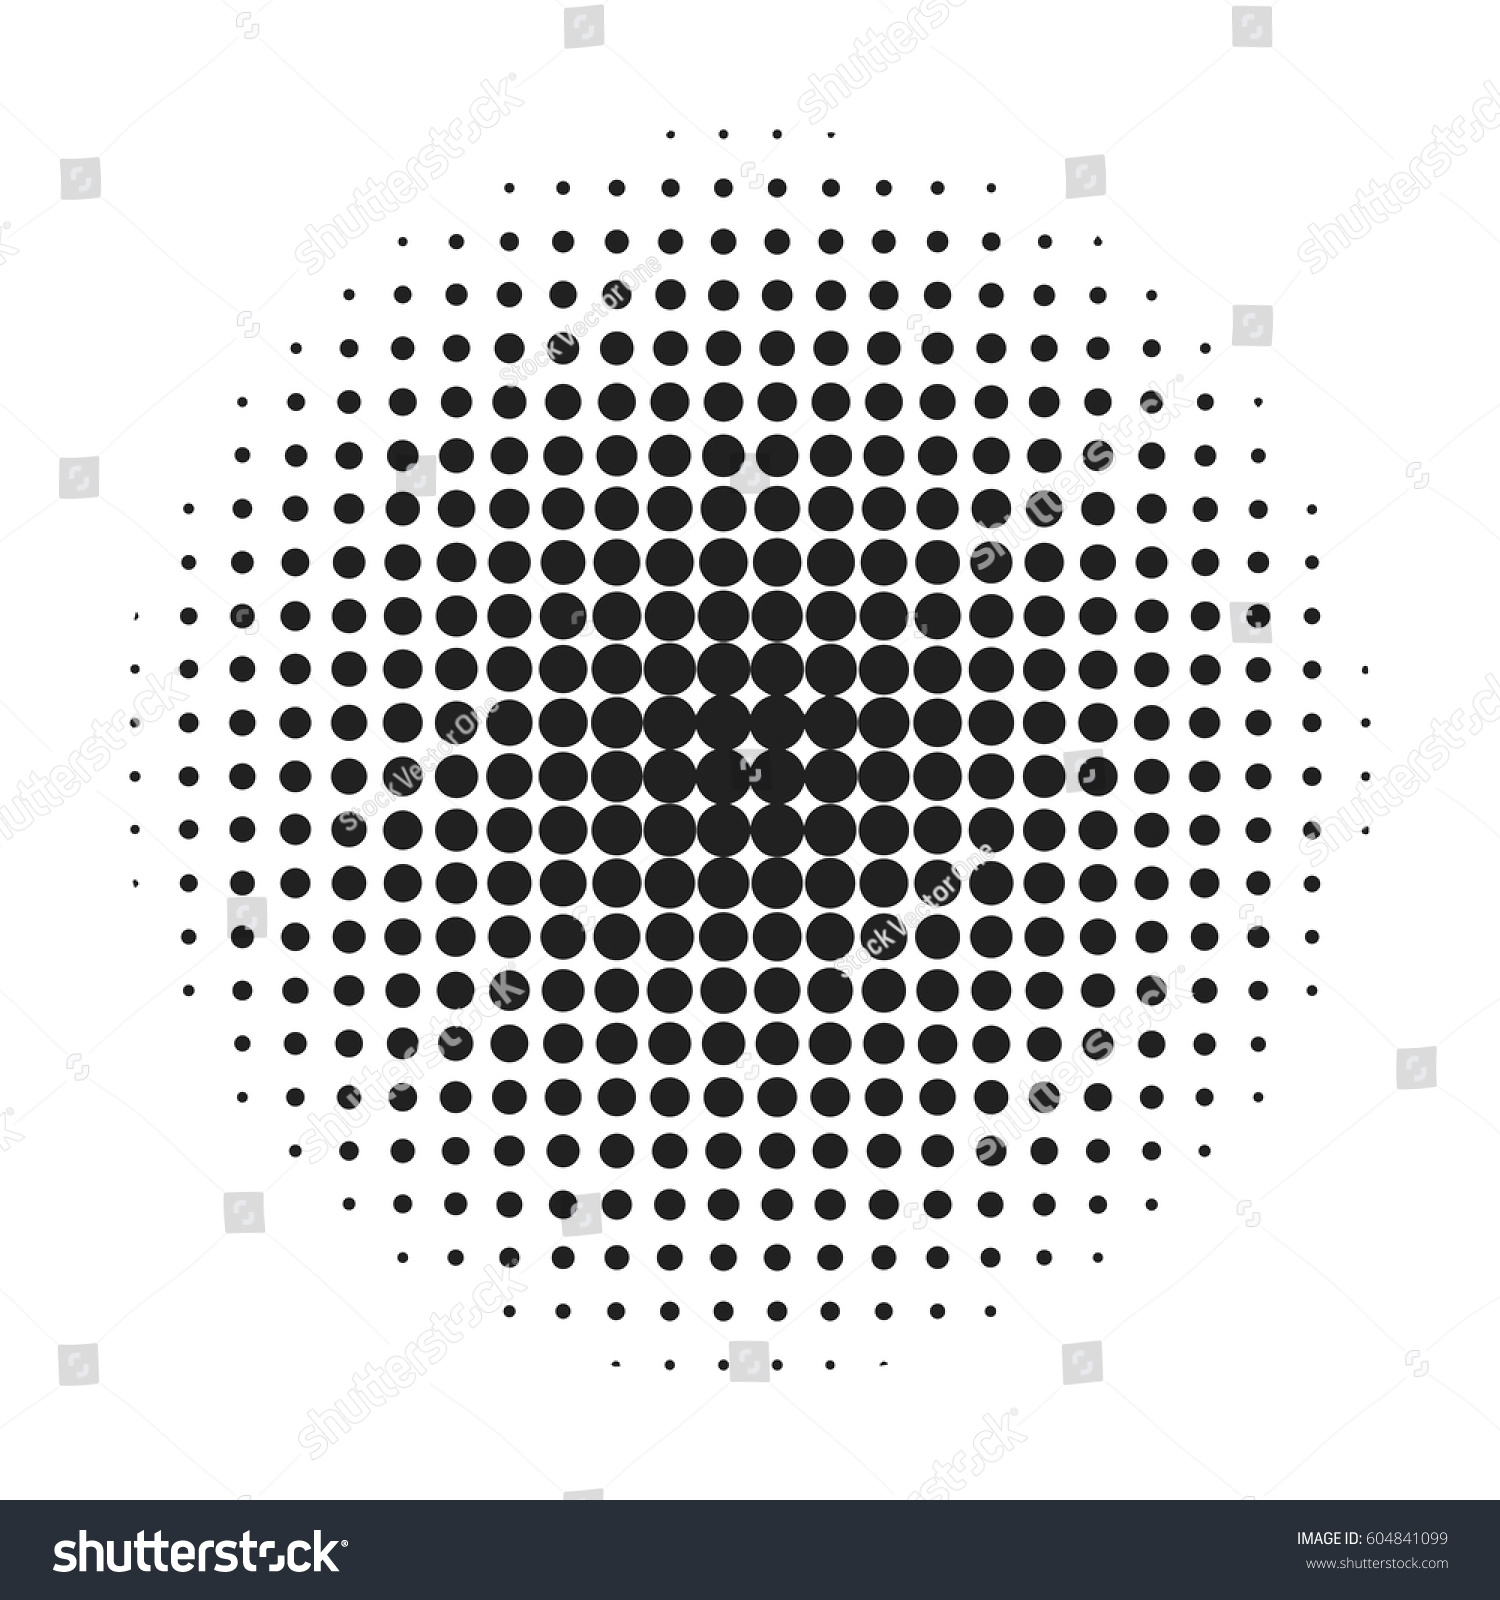 halftone circle background spotted circles overlay stock vector